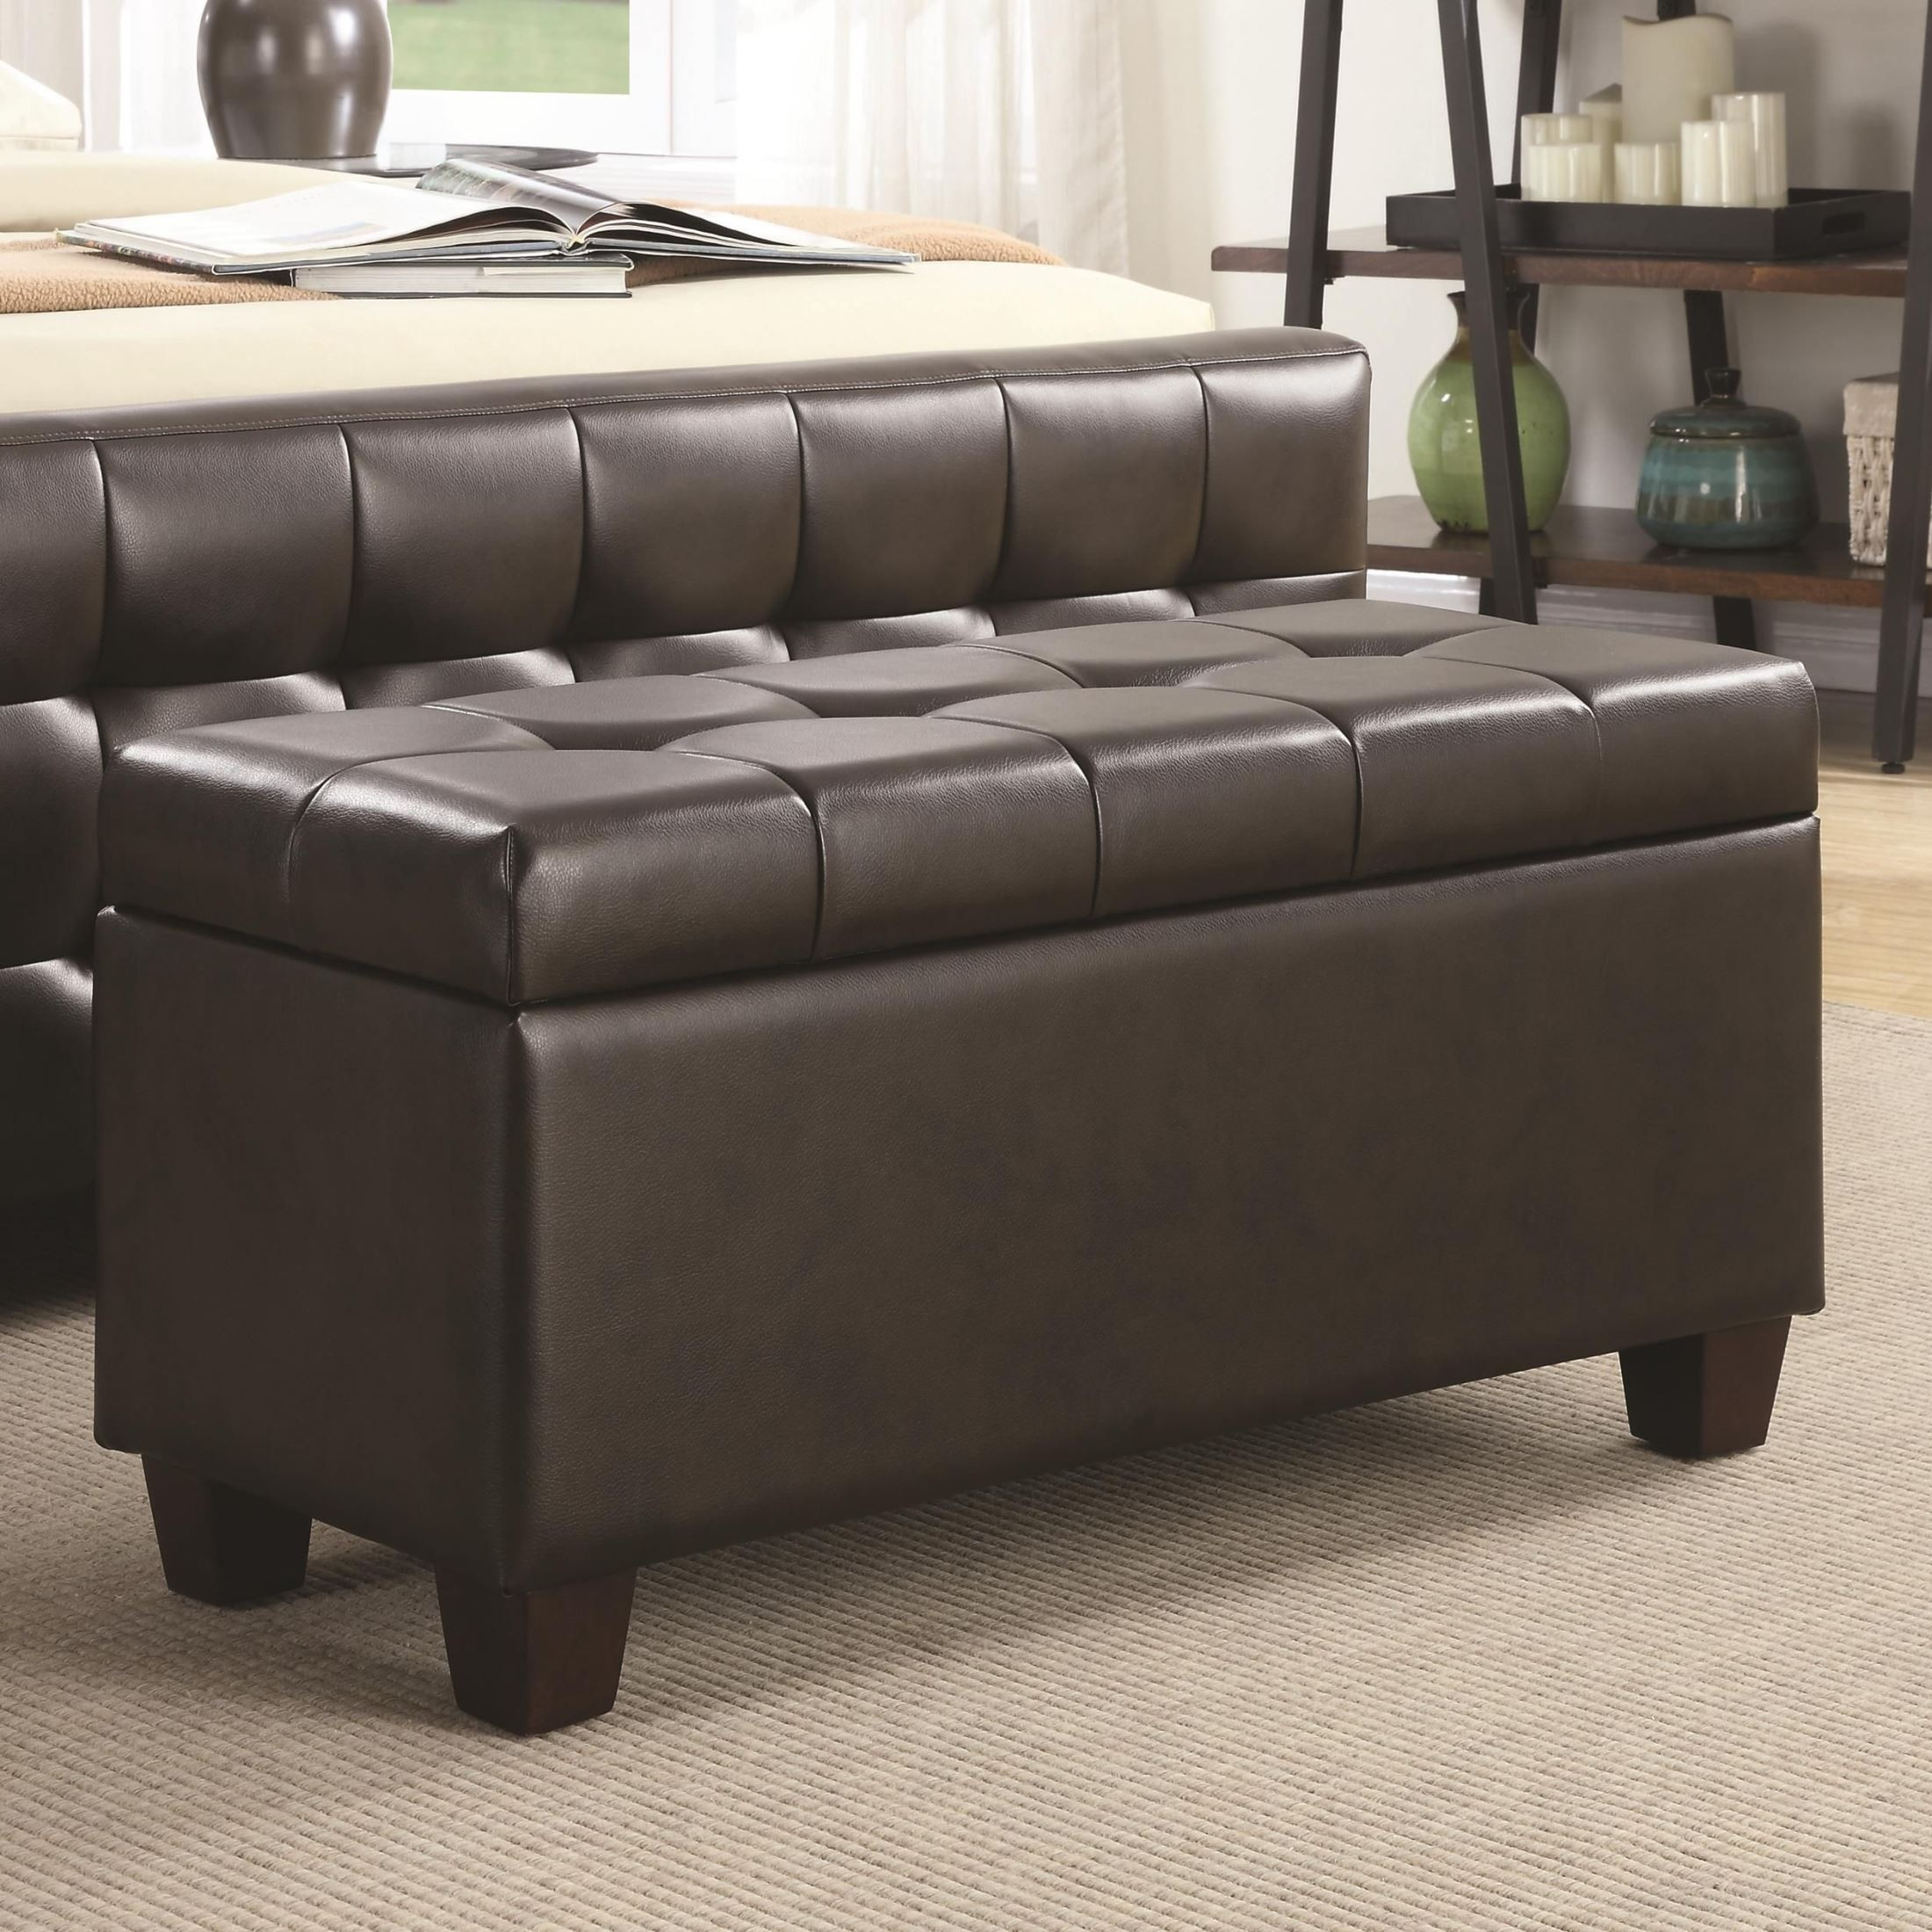 500128 Brown Faux Leather Rectangular Storage Bench From Coaster 500128 Coleman Furniture